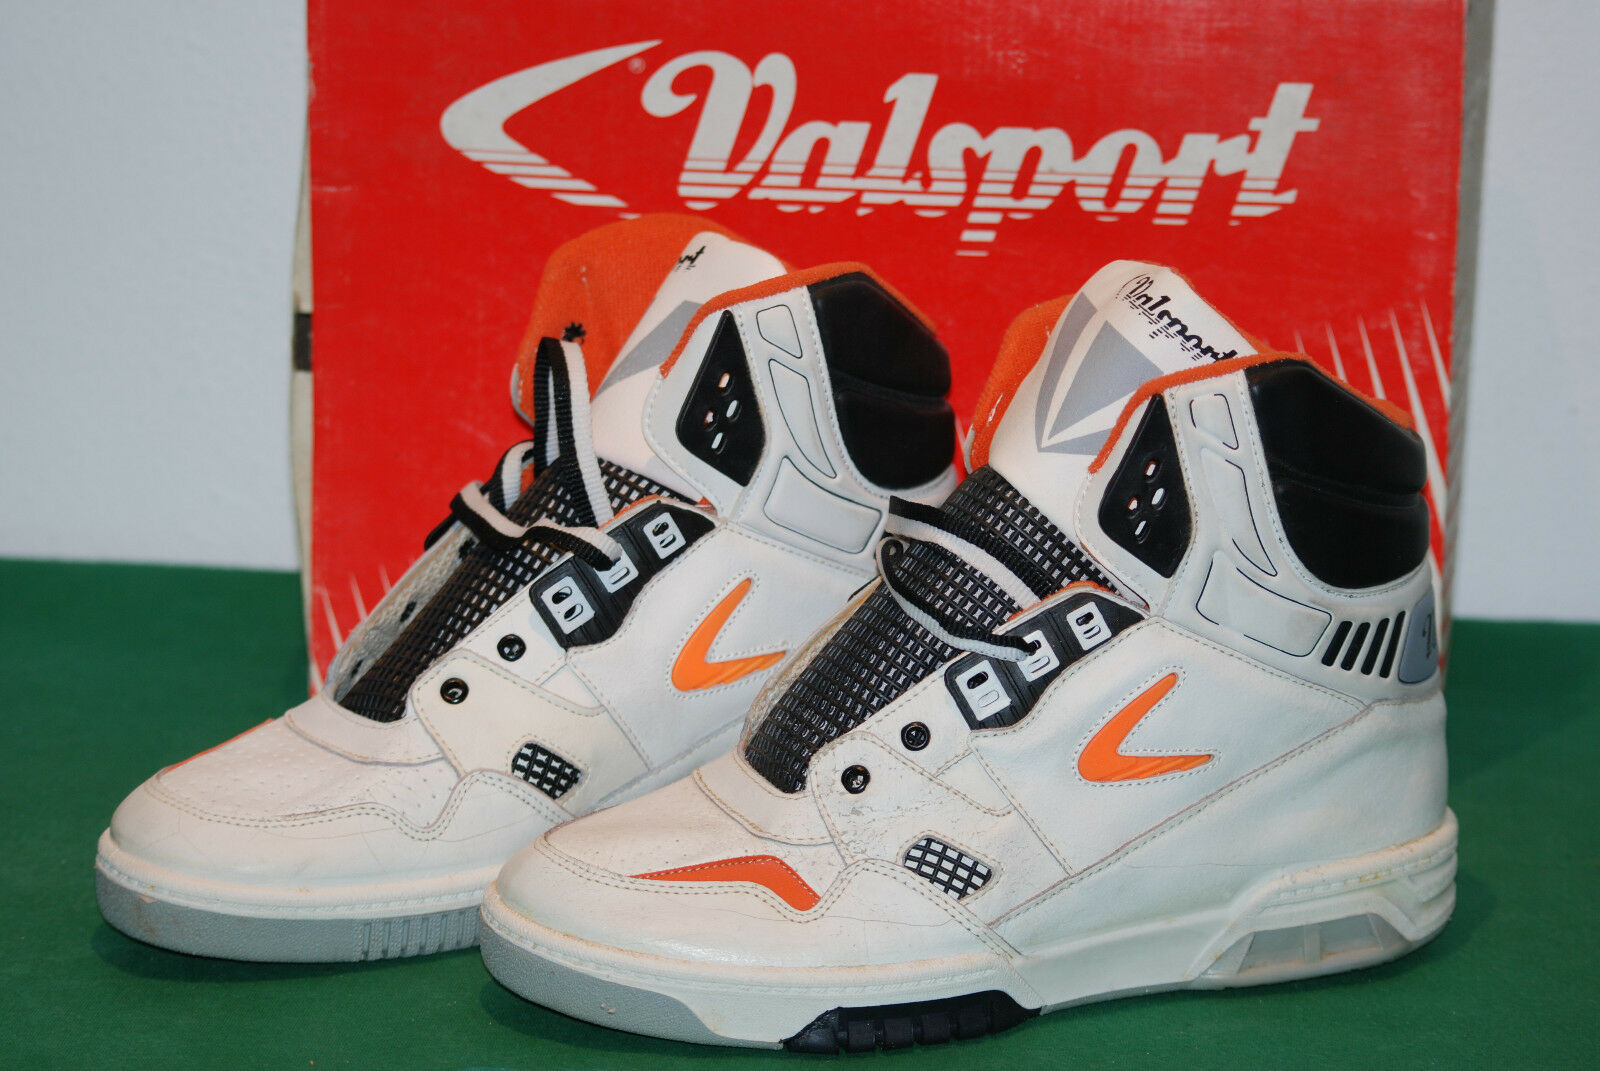 NOS valsport assist VINTAGE LA GEAR REGULATOR basketball AIR SYSTEM schuhe TOPS    | Günstigstes